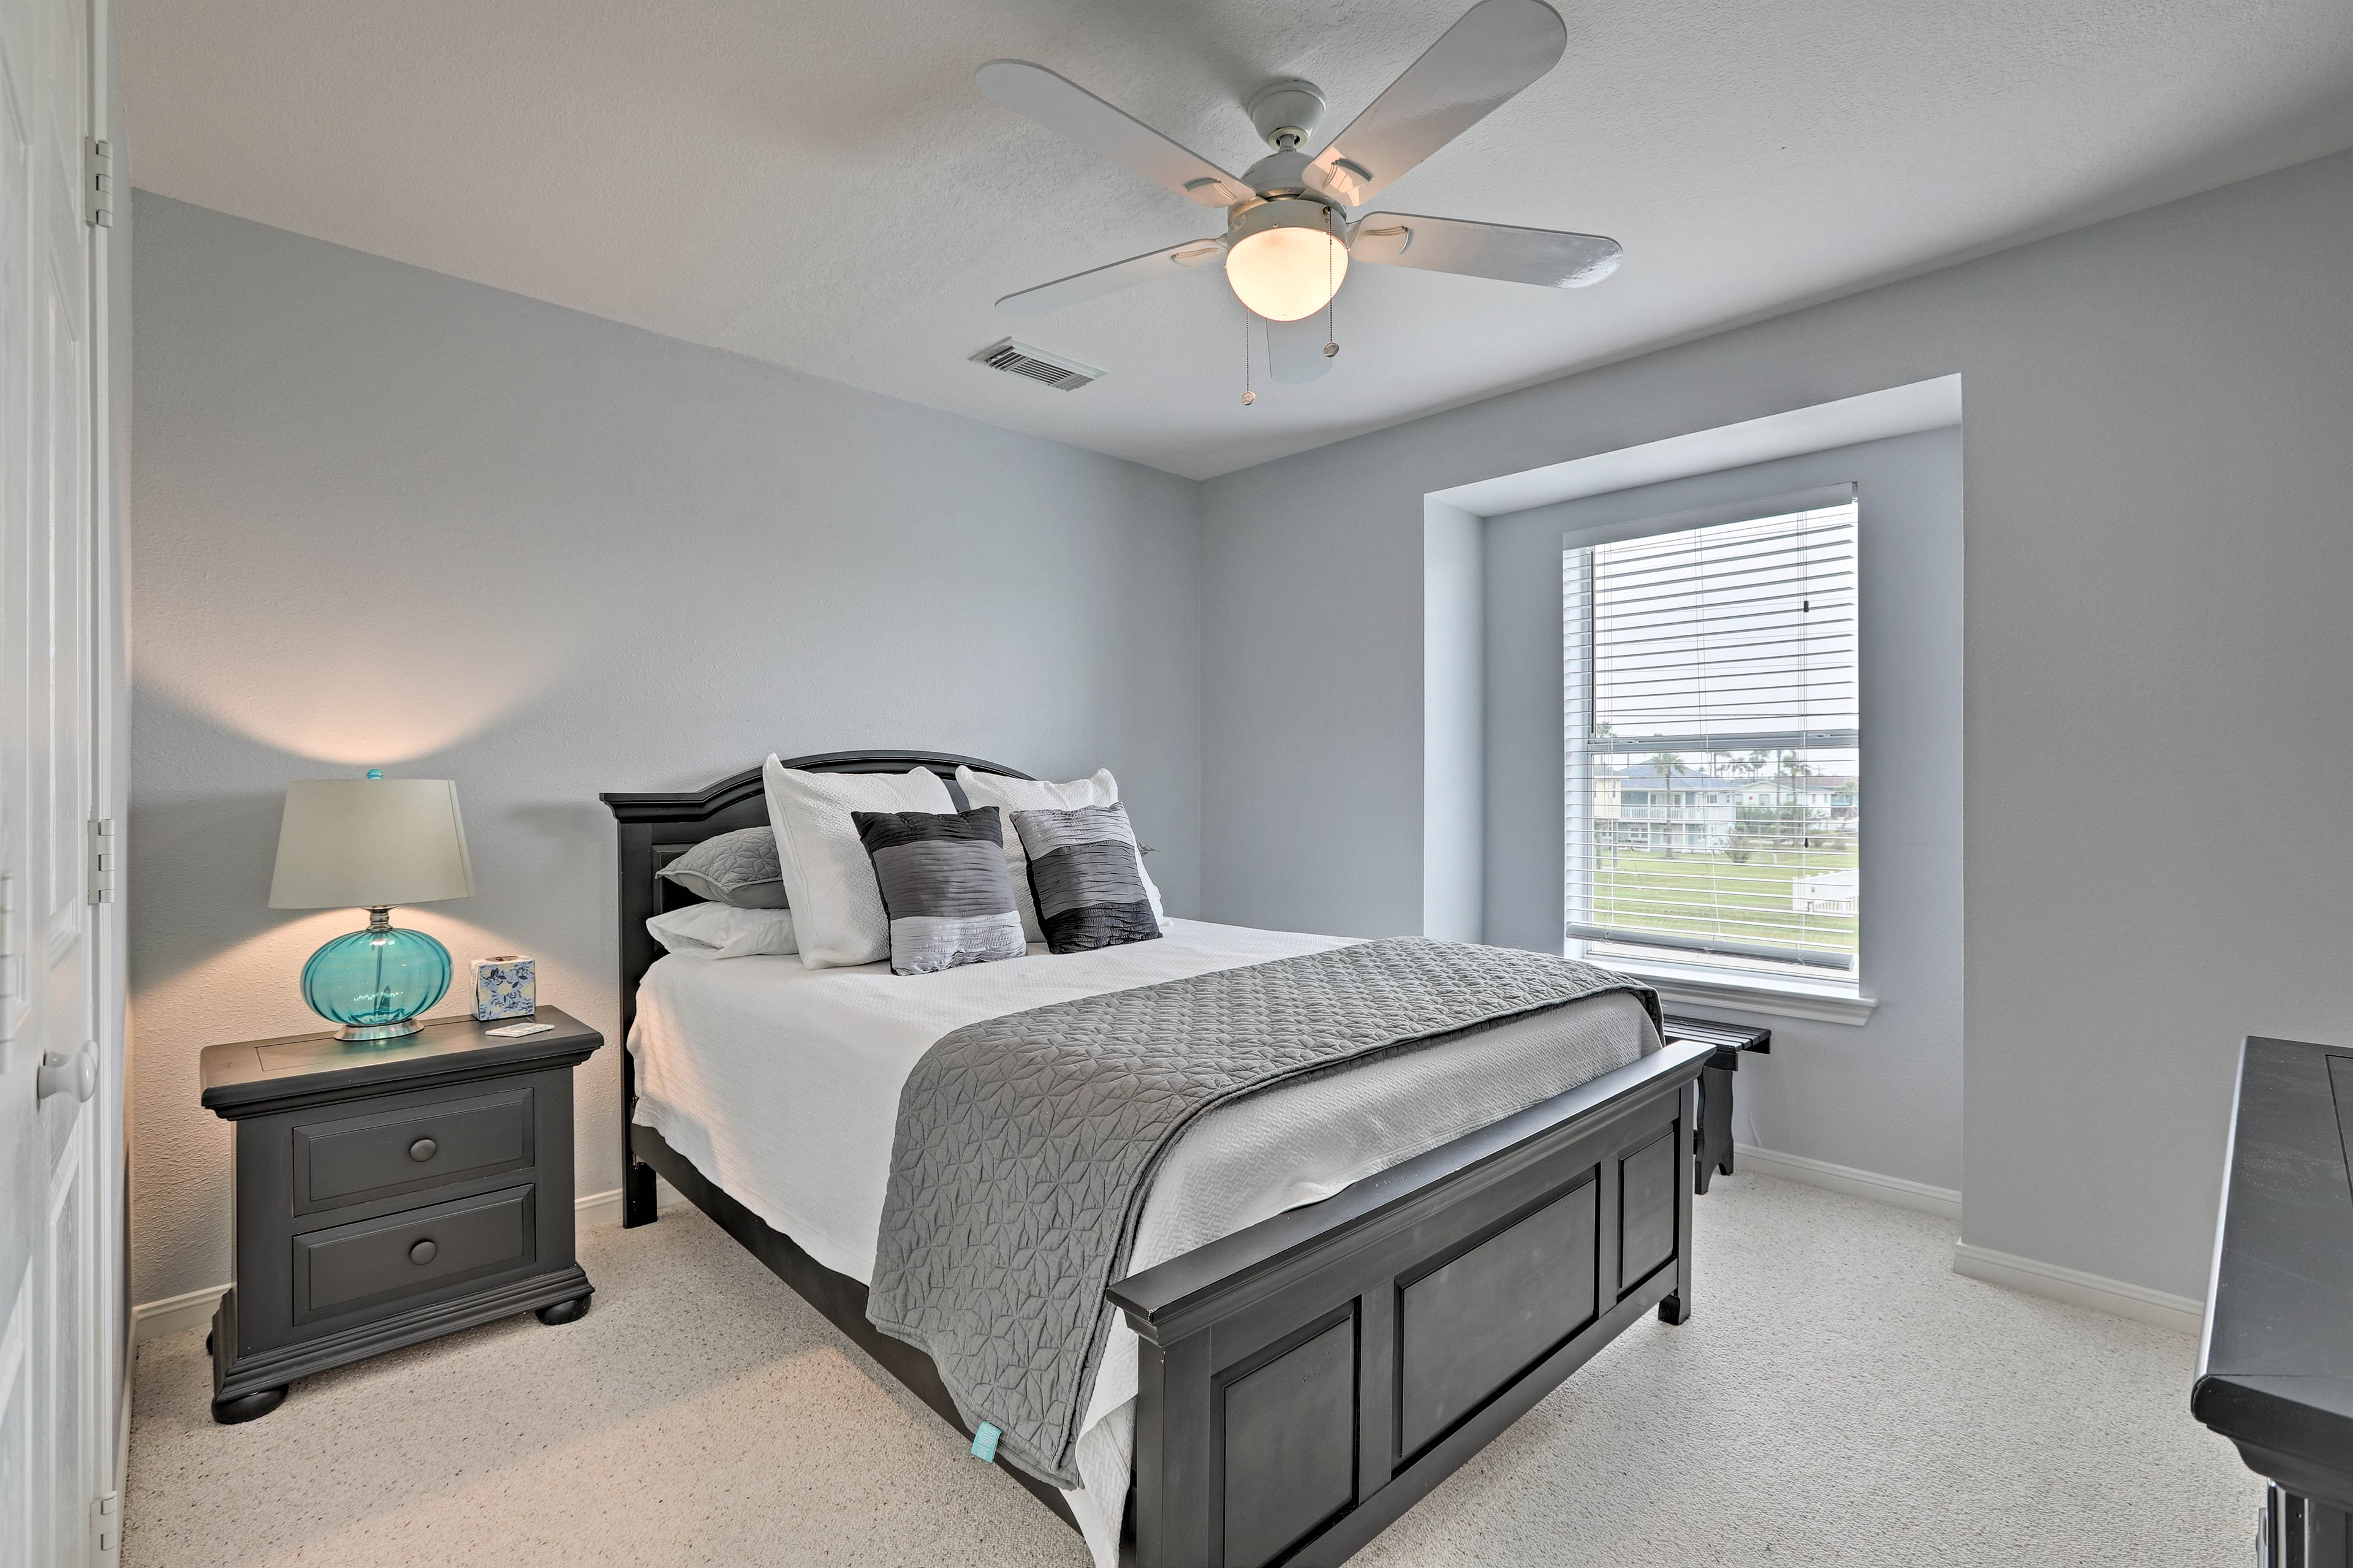 The second bedroom also features a queen-sized bed, ceiling fan, and closet.